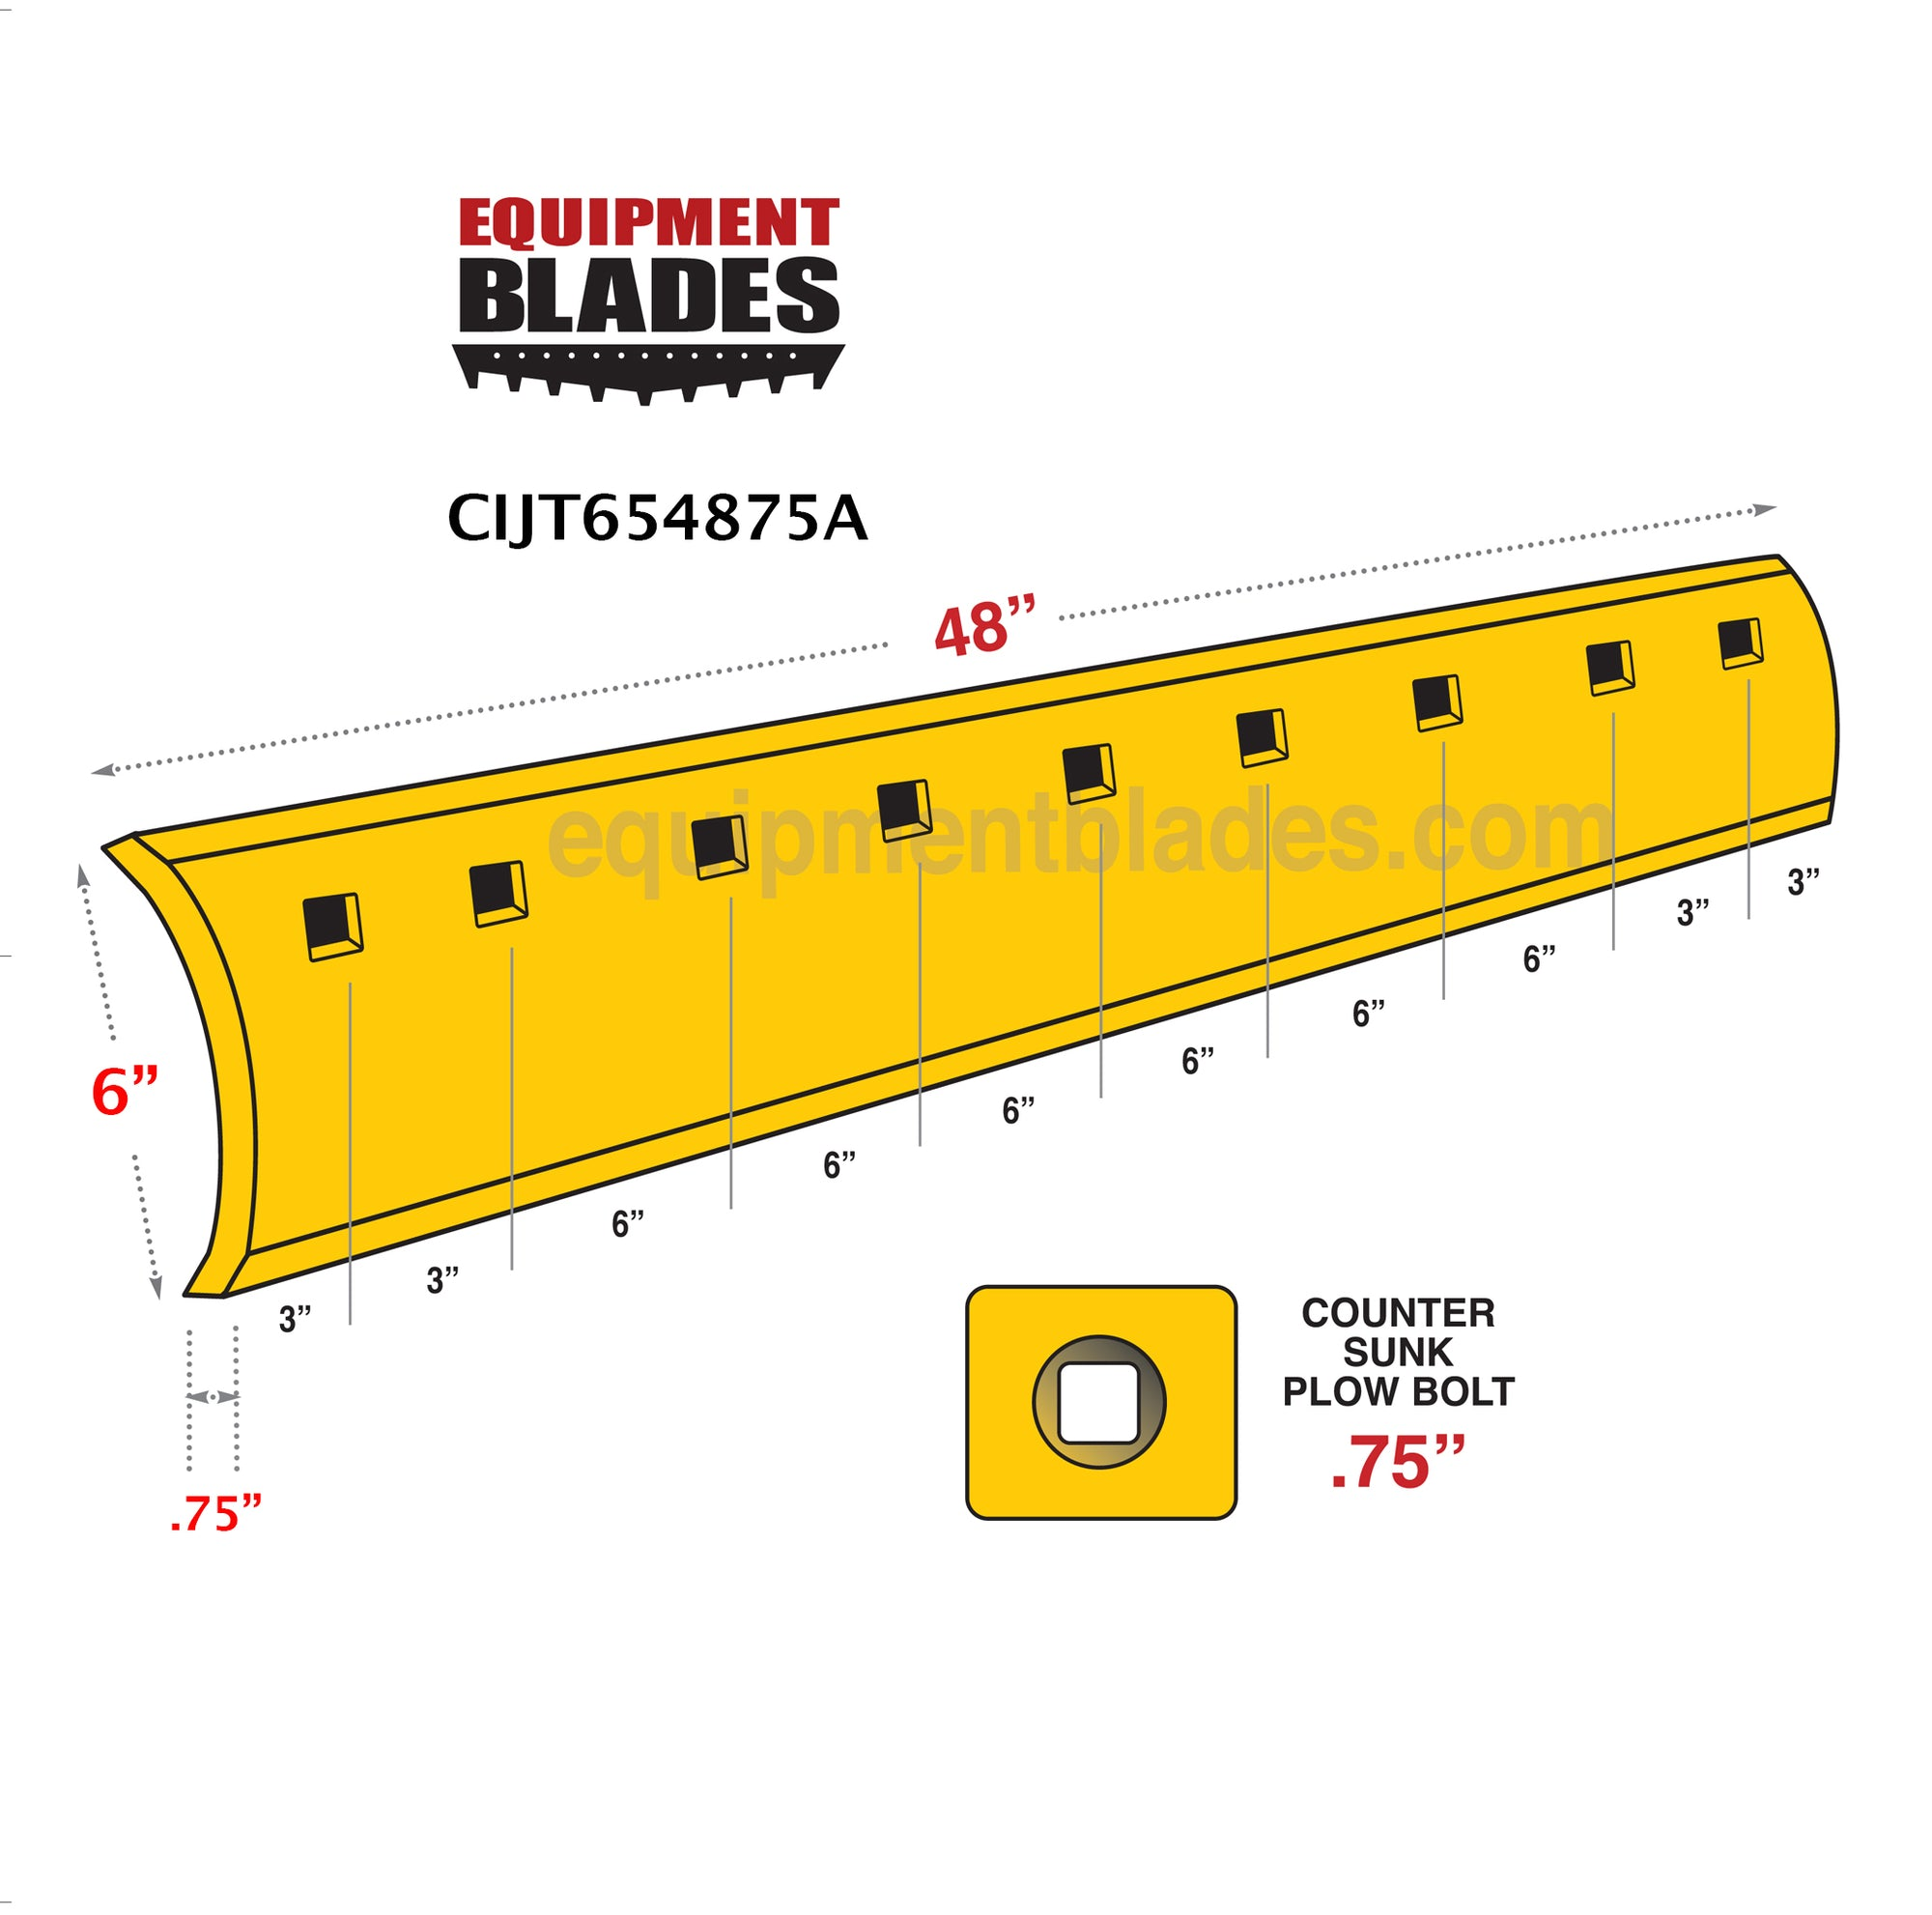 underbody single insert carbide 4' CIJT654875A-Grader Blades-Black Cat Wear Parts-Equipment Blades Inc